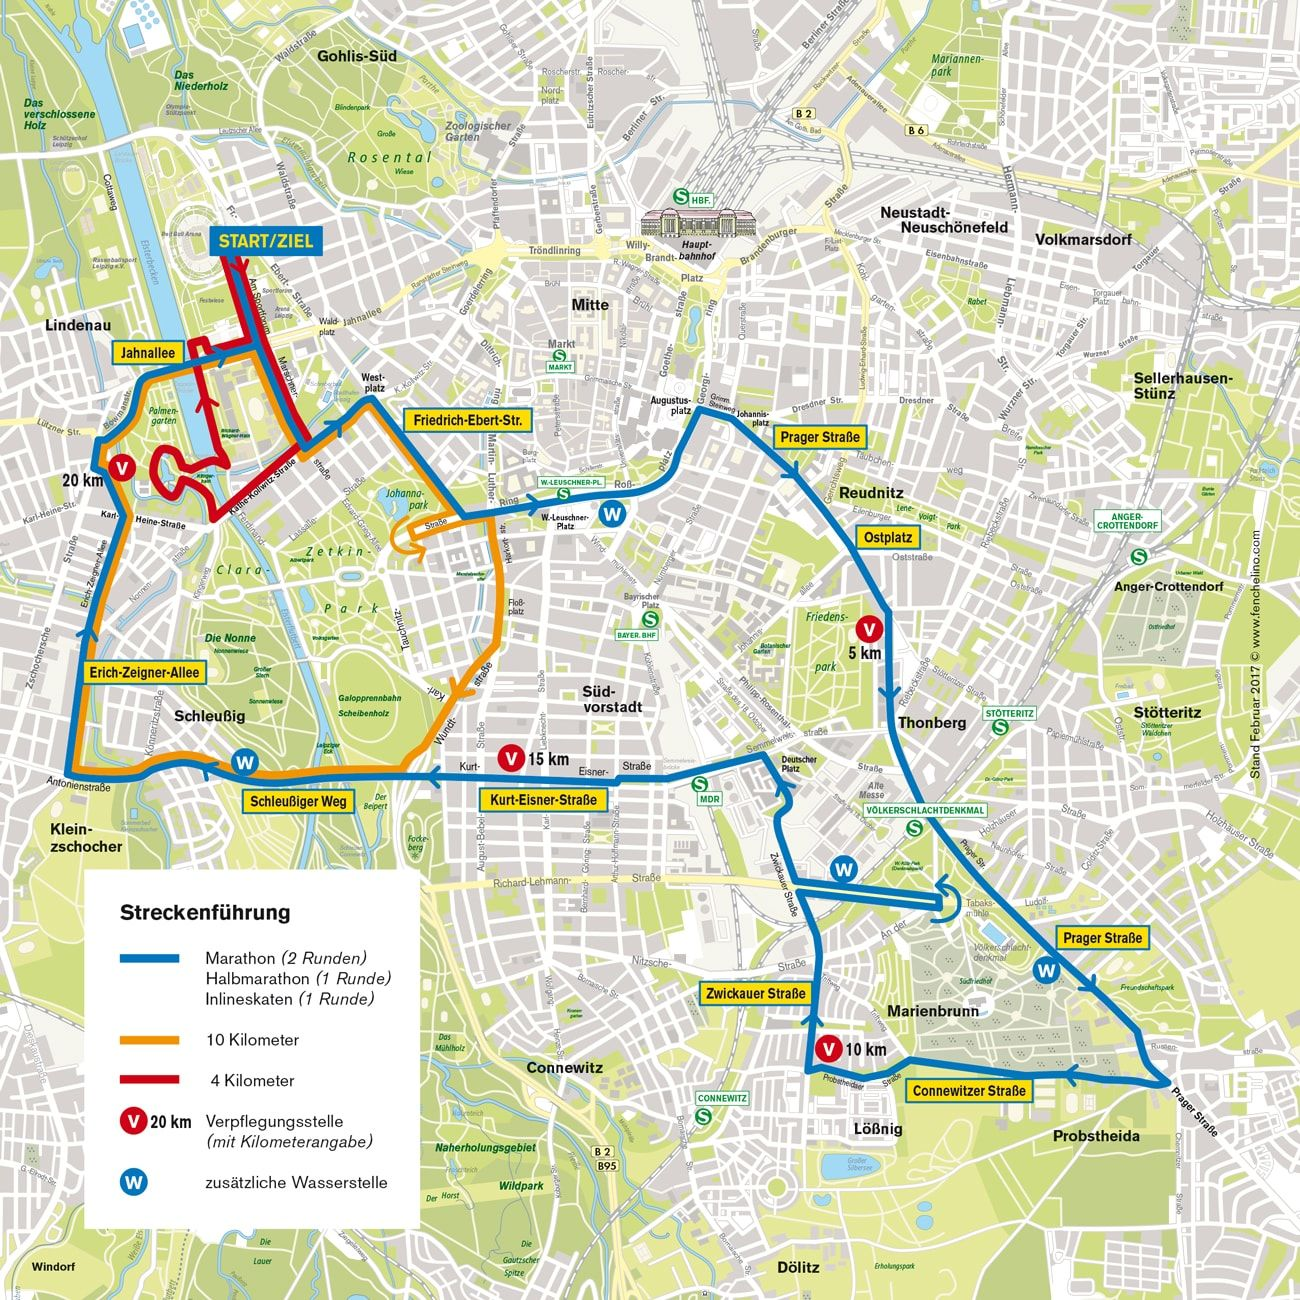 Route map of the Leipzig Marathon 2018